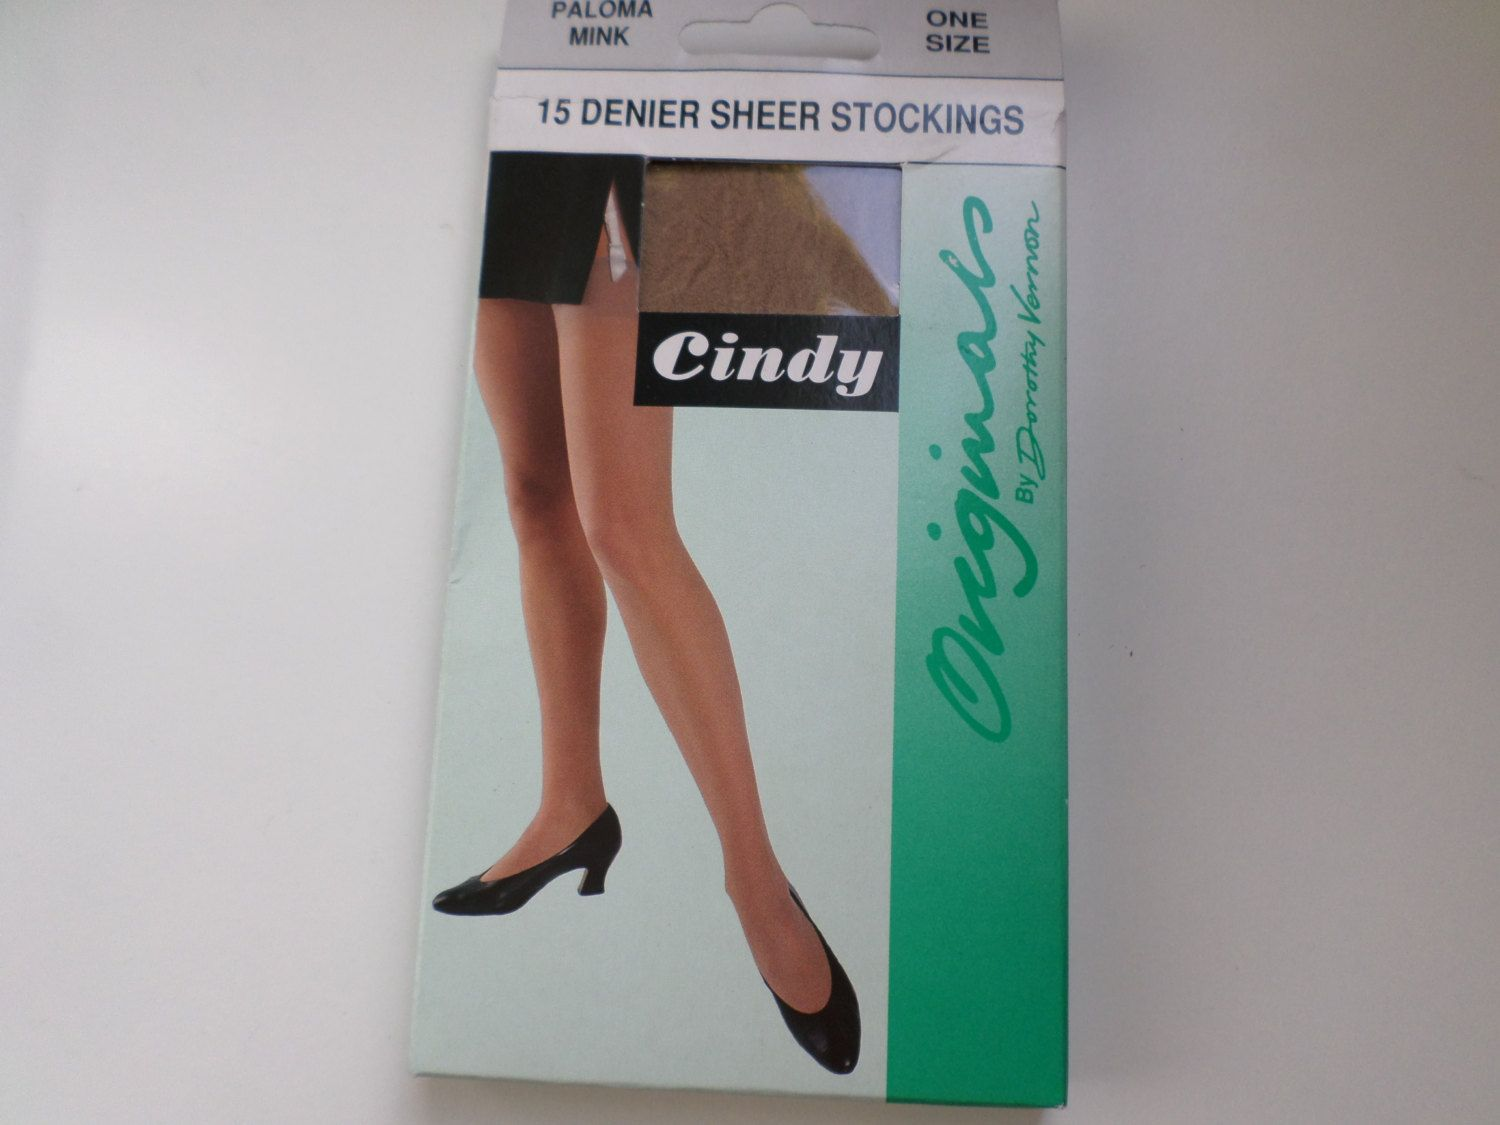 Vintage 15 Denier sheer stockings Paloma Mink by RetroWARDROBE on Etsy